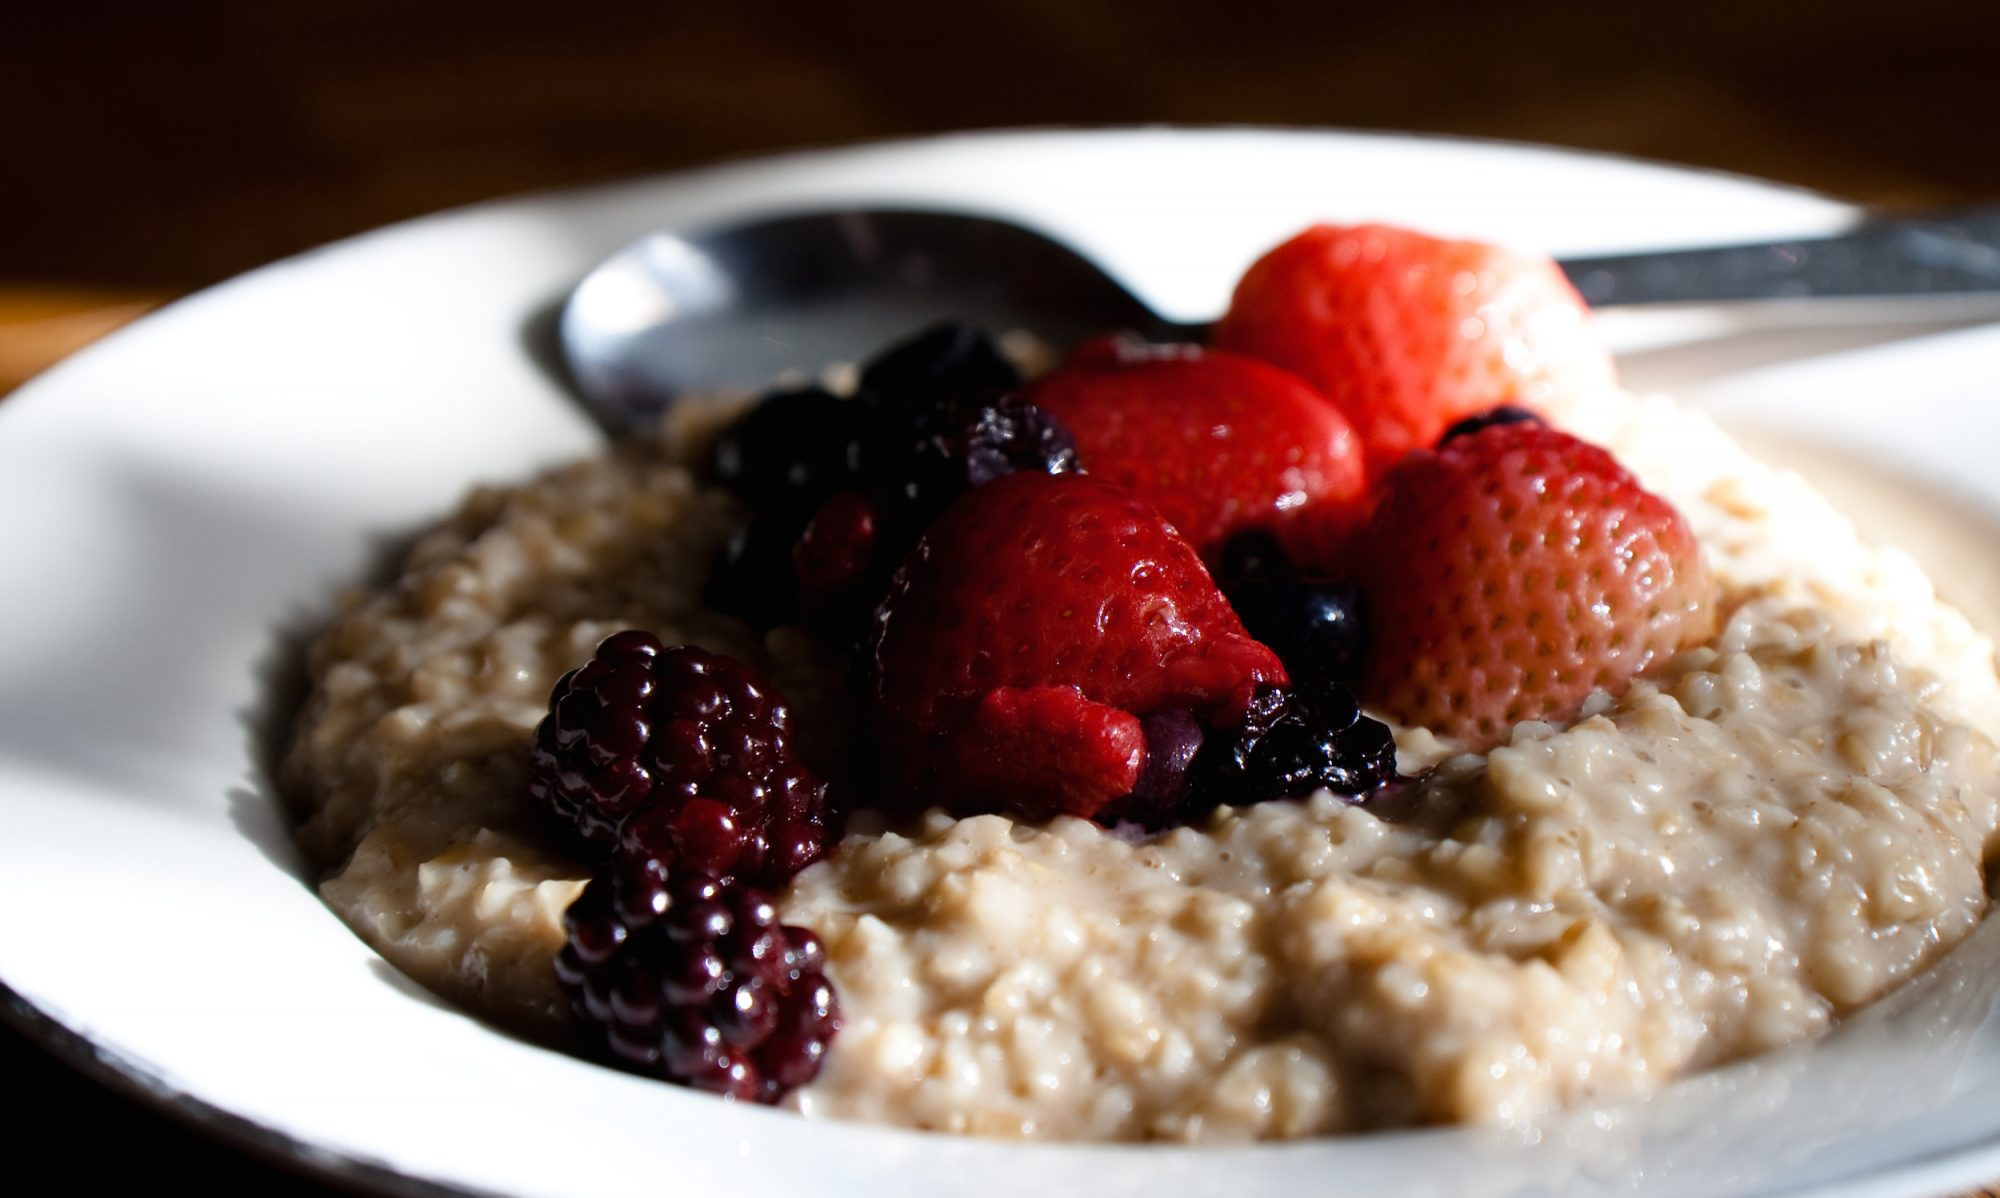 oatmeal is the secret to long life